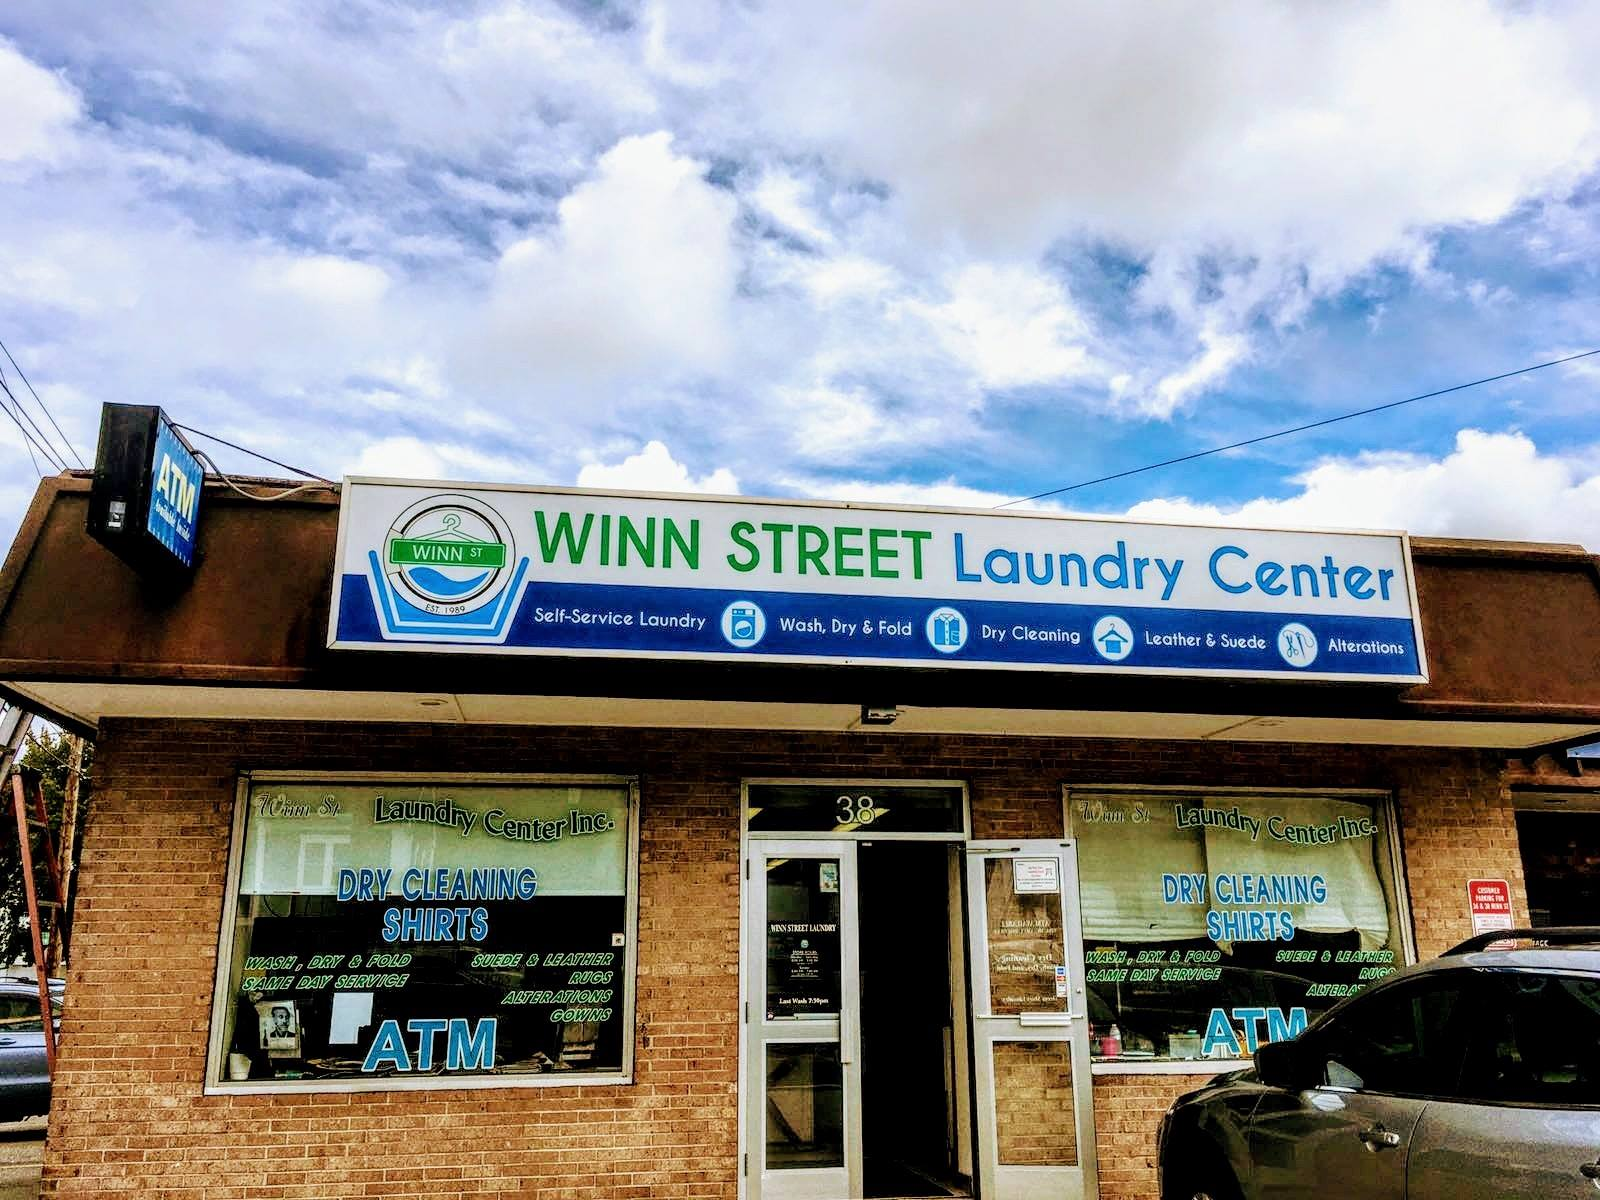 Winn Street Laundry Center